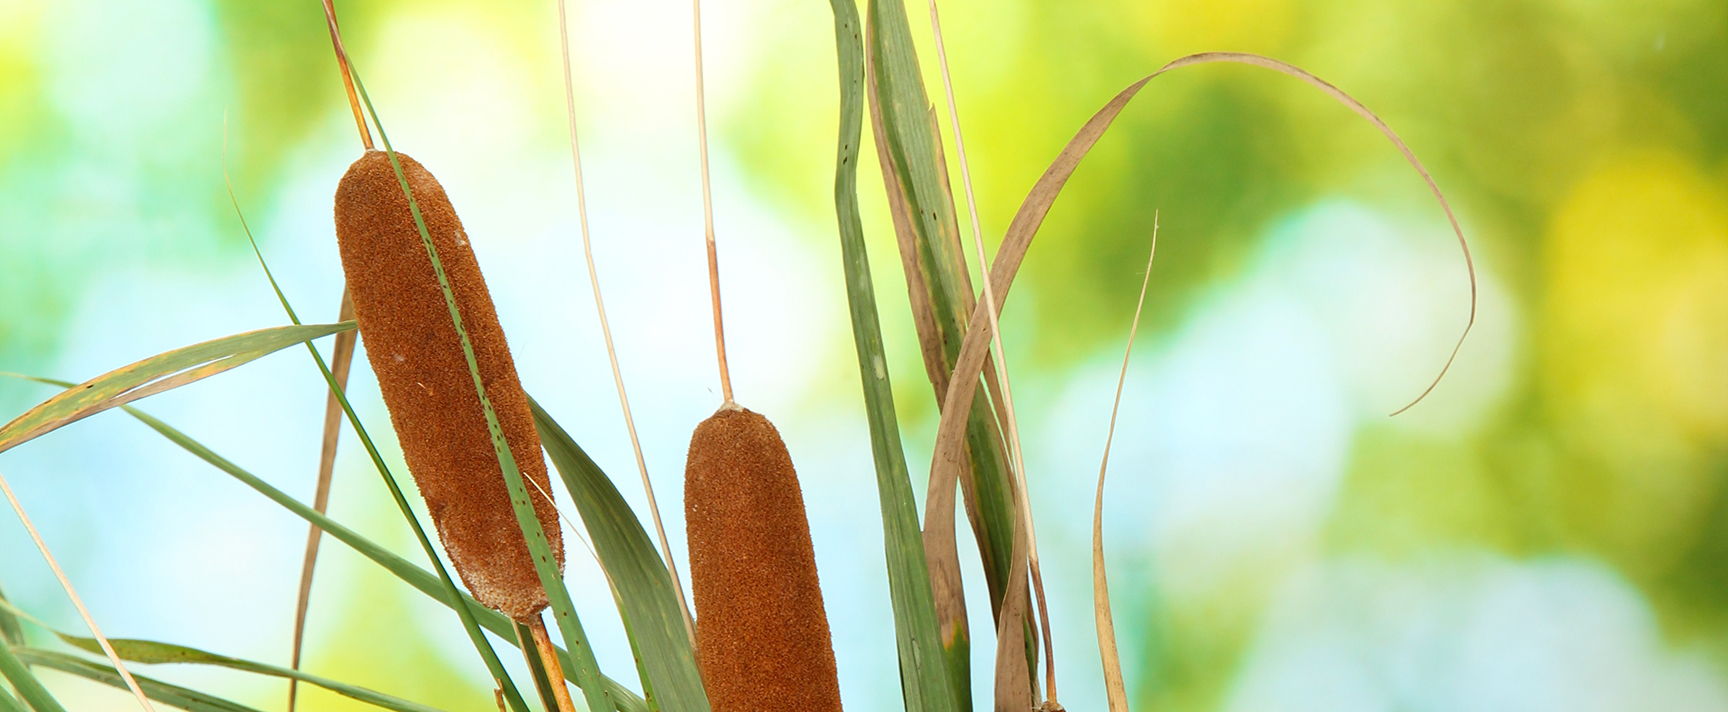 Photo of cattails in natural light